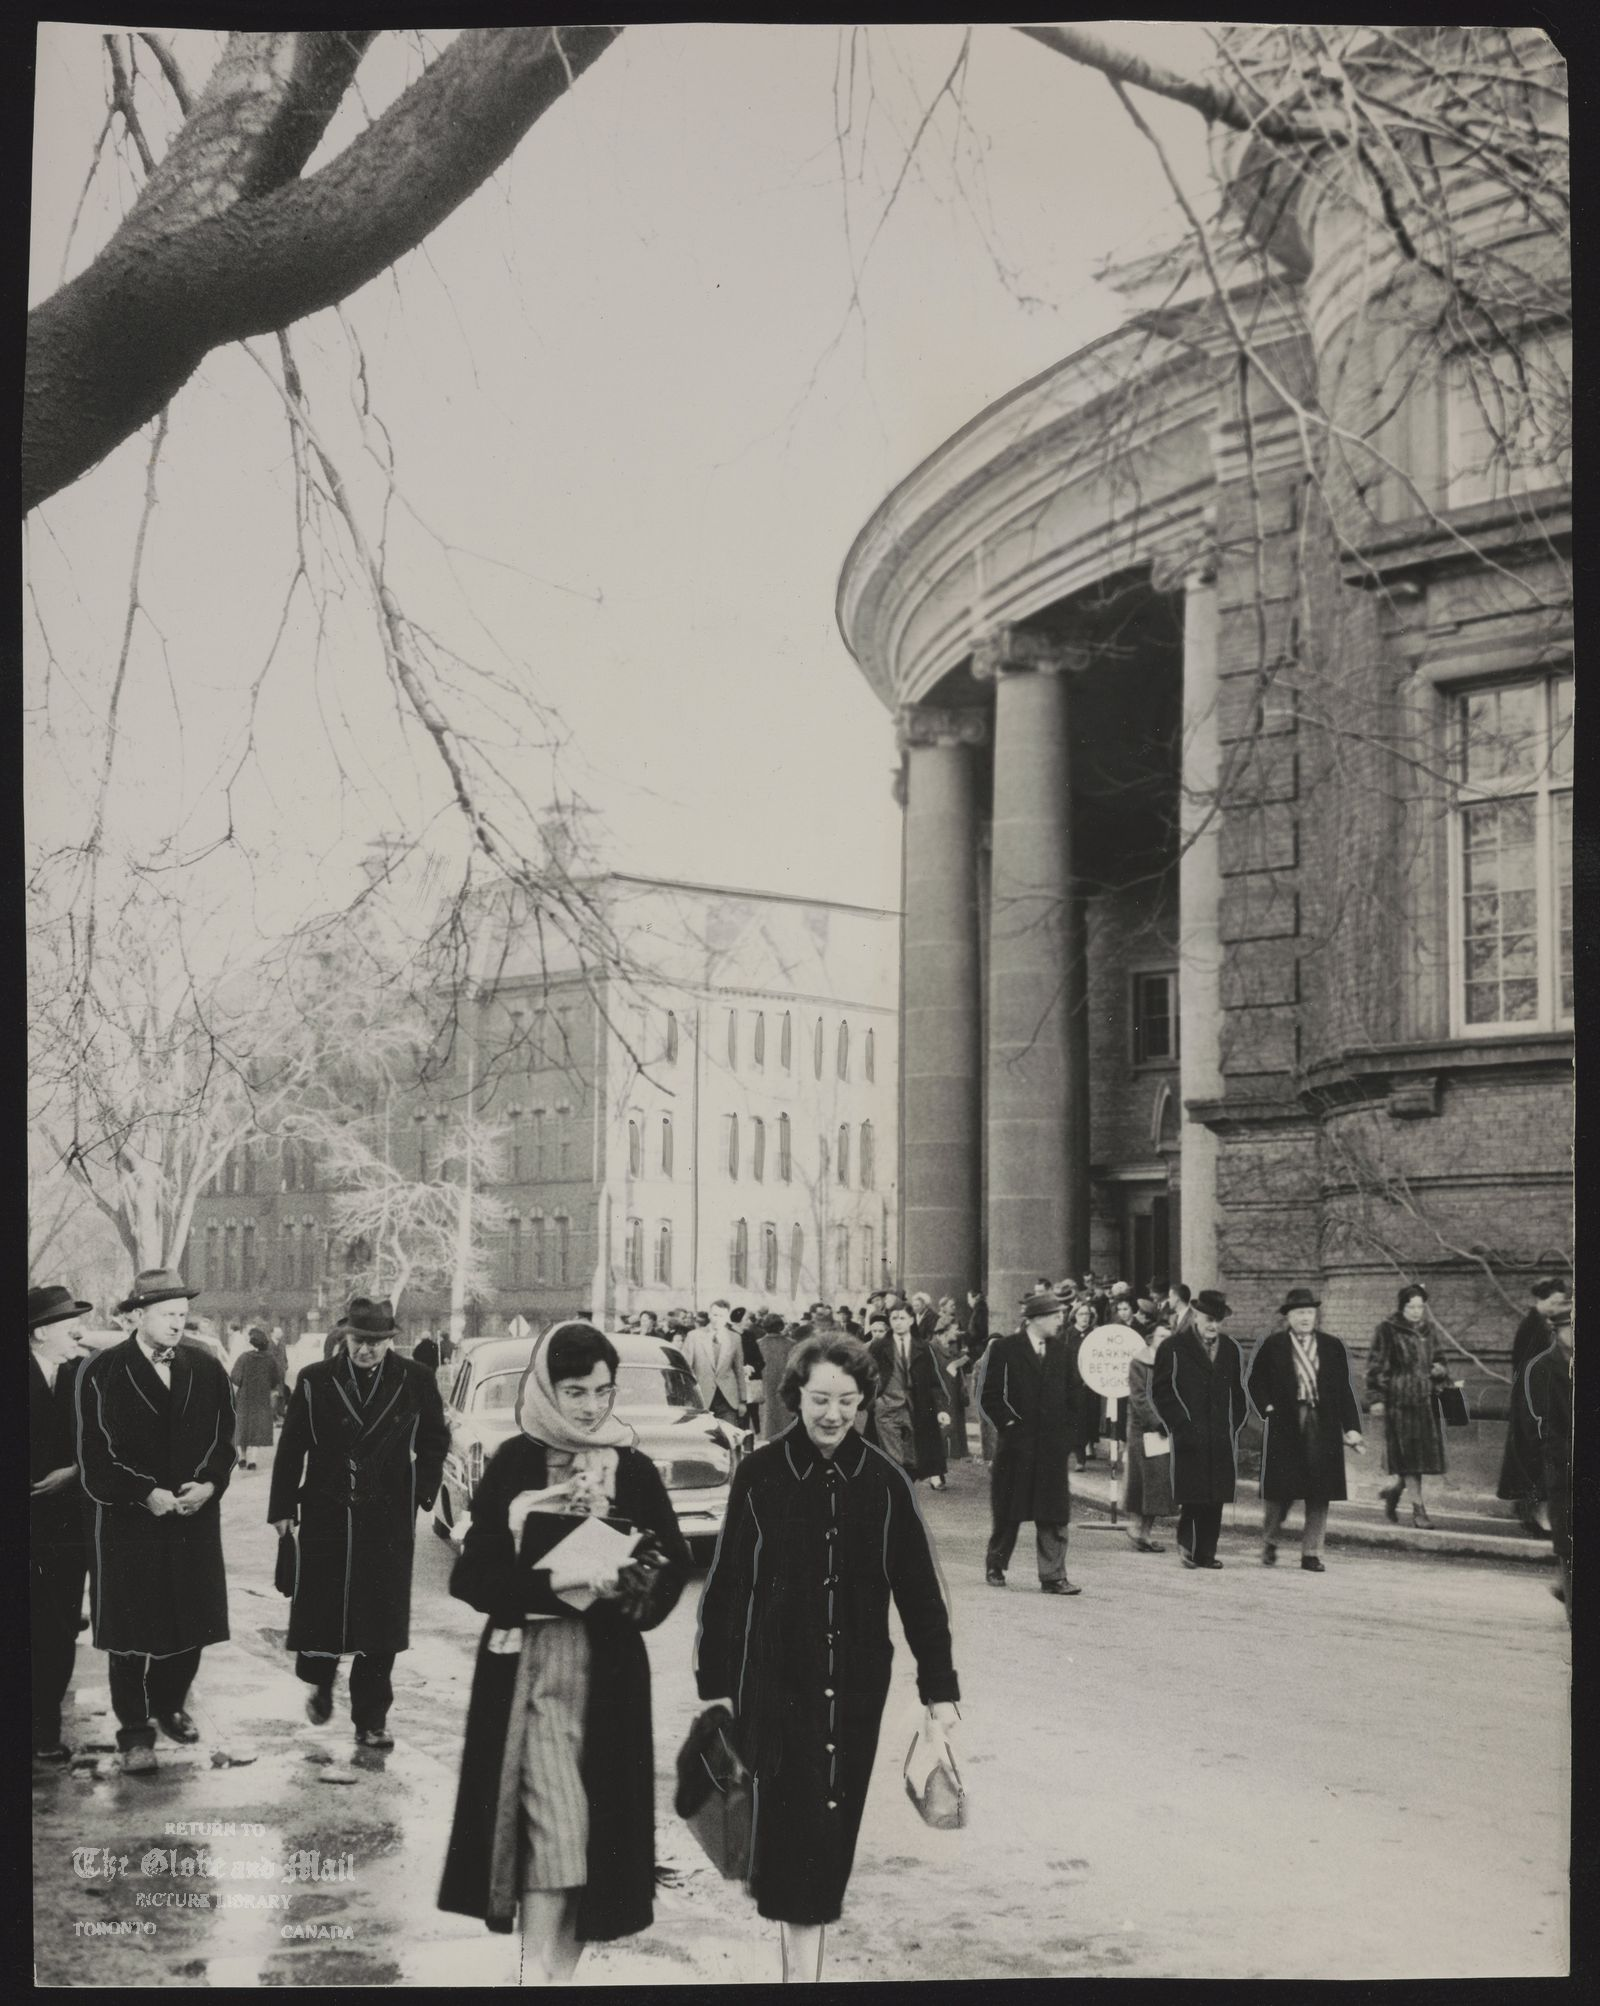 SIDNEY SMITH Politician. In Toronto, some of the 1,200 persons who attended a special service in memory of Dr. Smith leave Convocation Hall. at the University of Toronto.